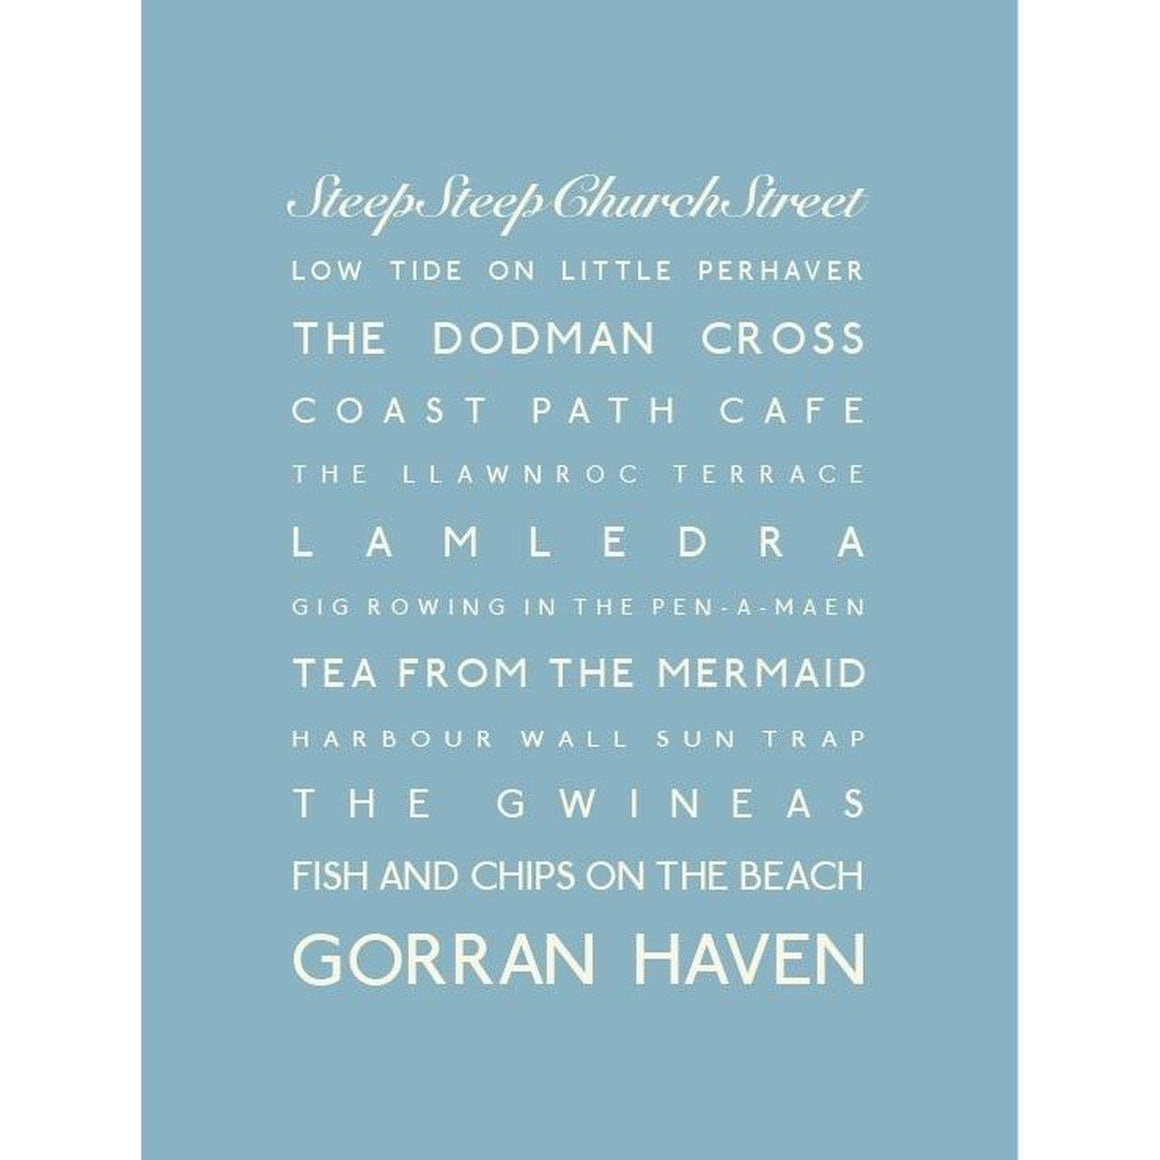 Gorran Haven